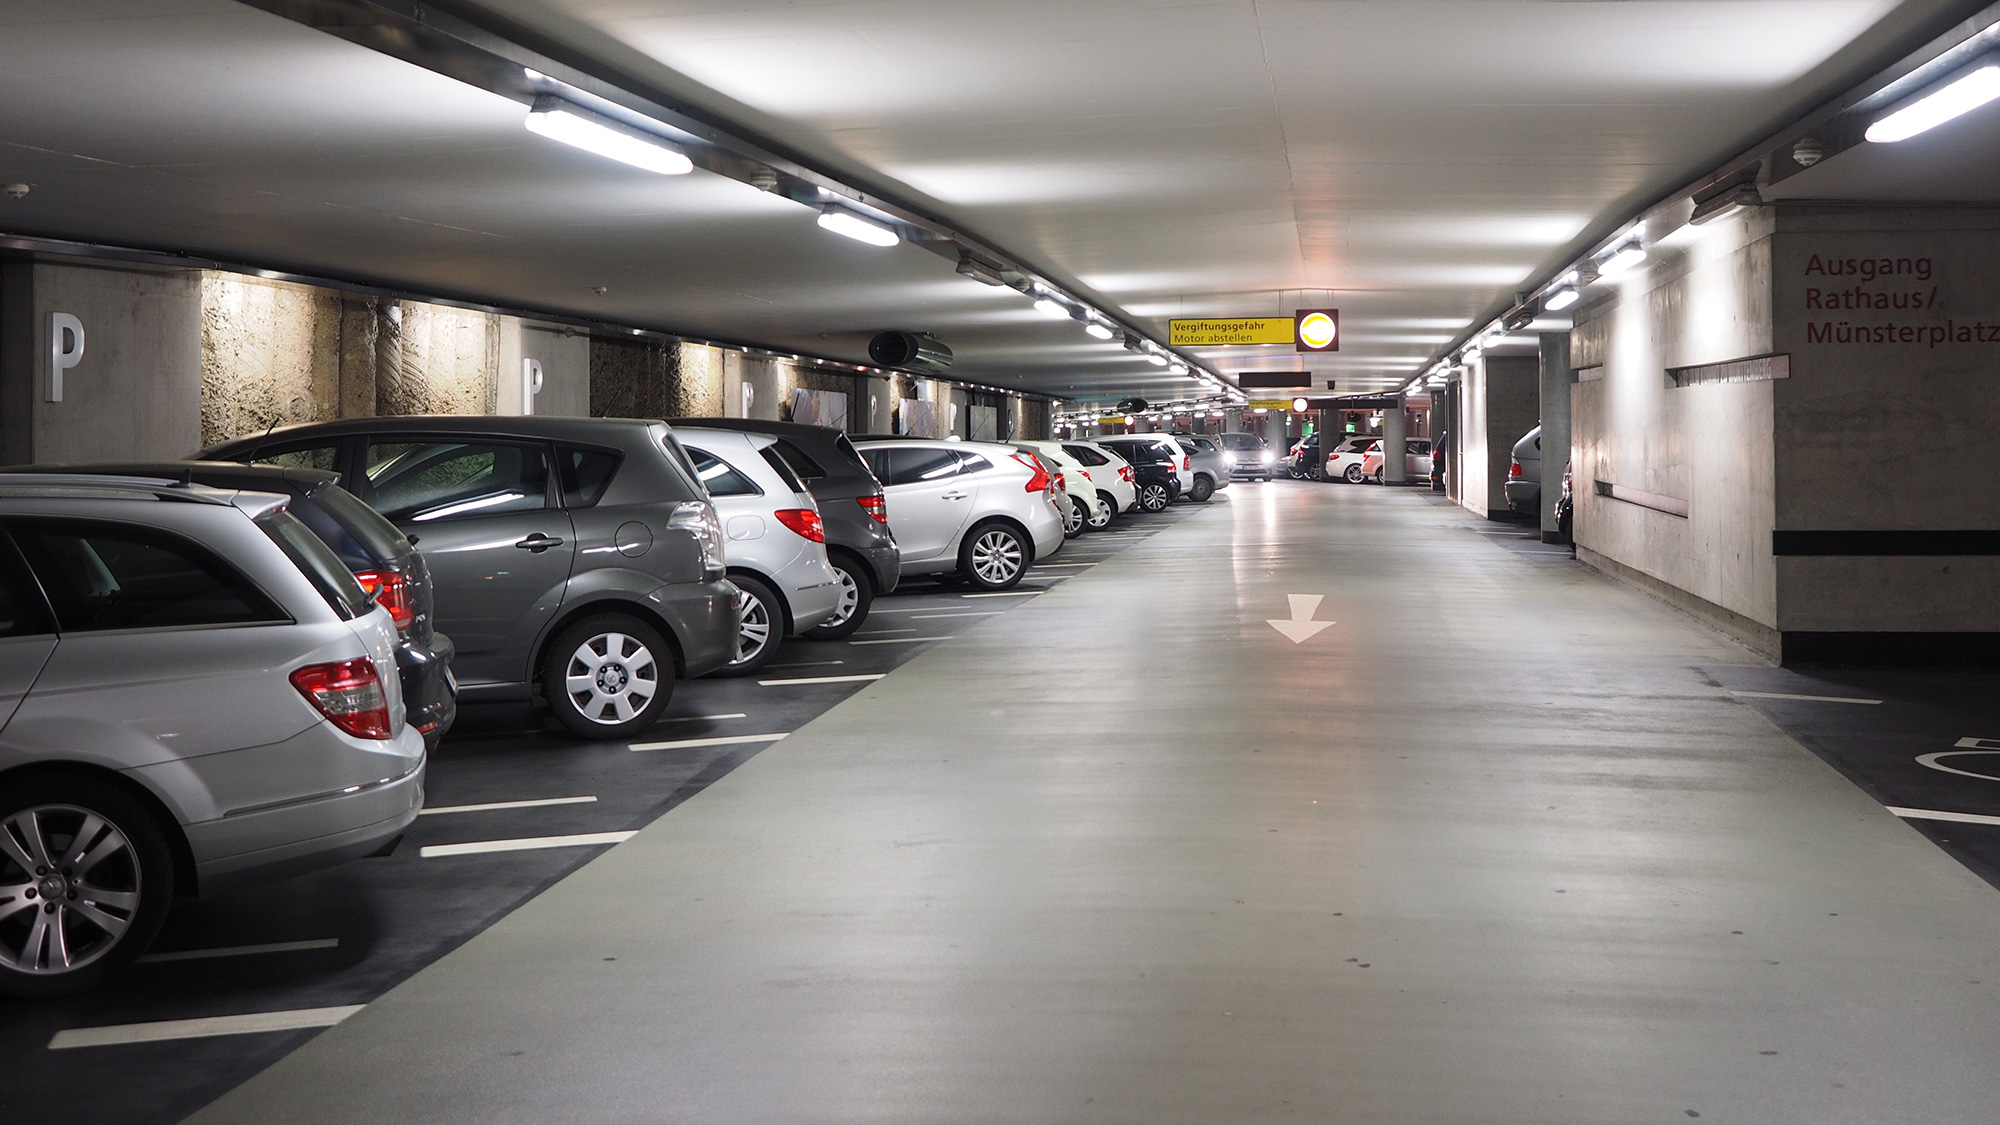 Car Lift To Basement Garage Design Recommendations For Multi Storey And Underground Car Parks